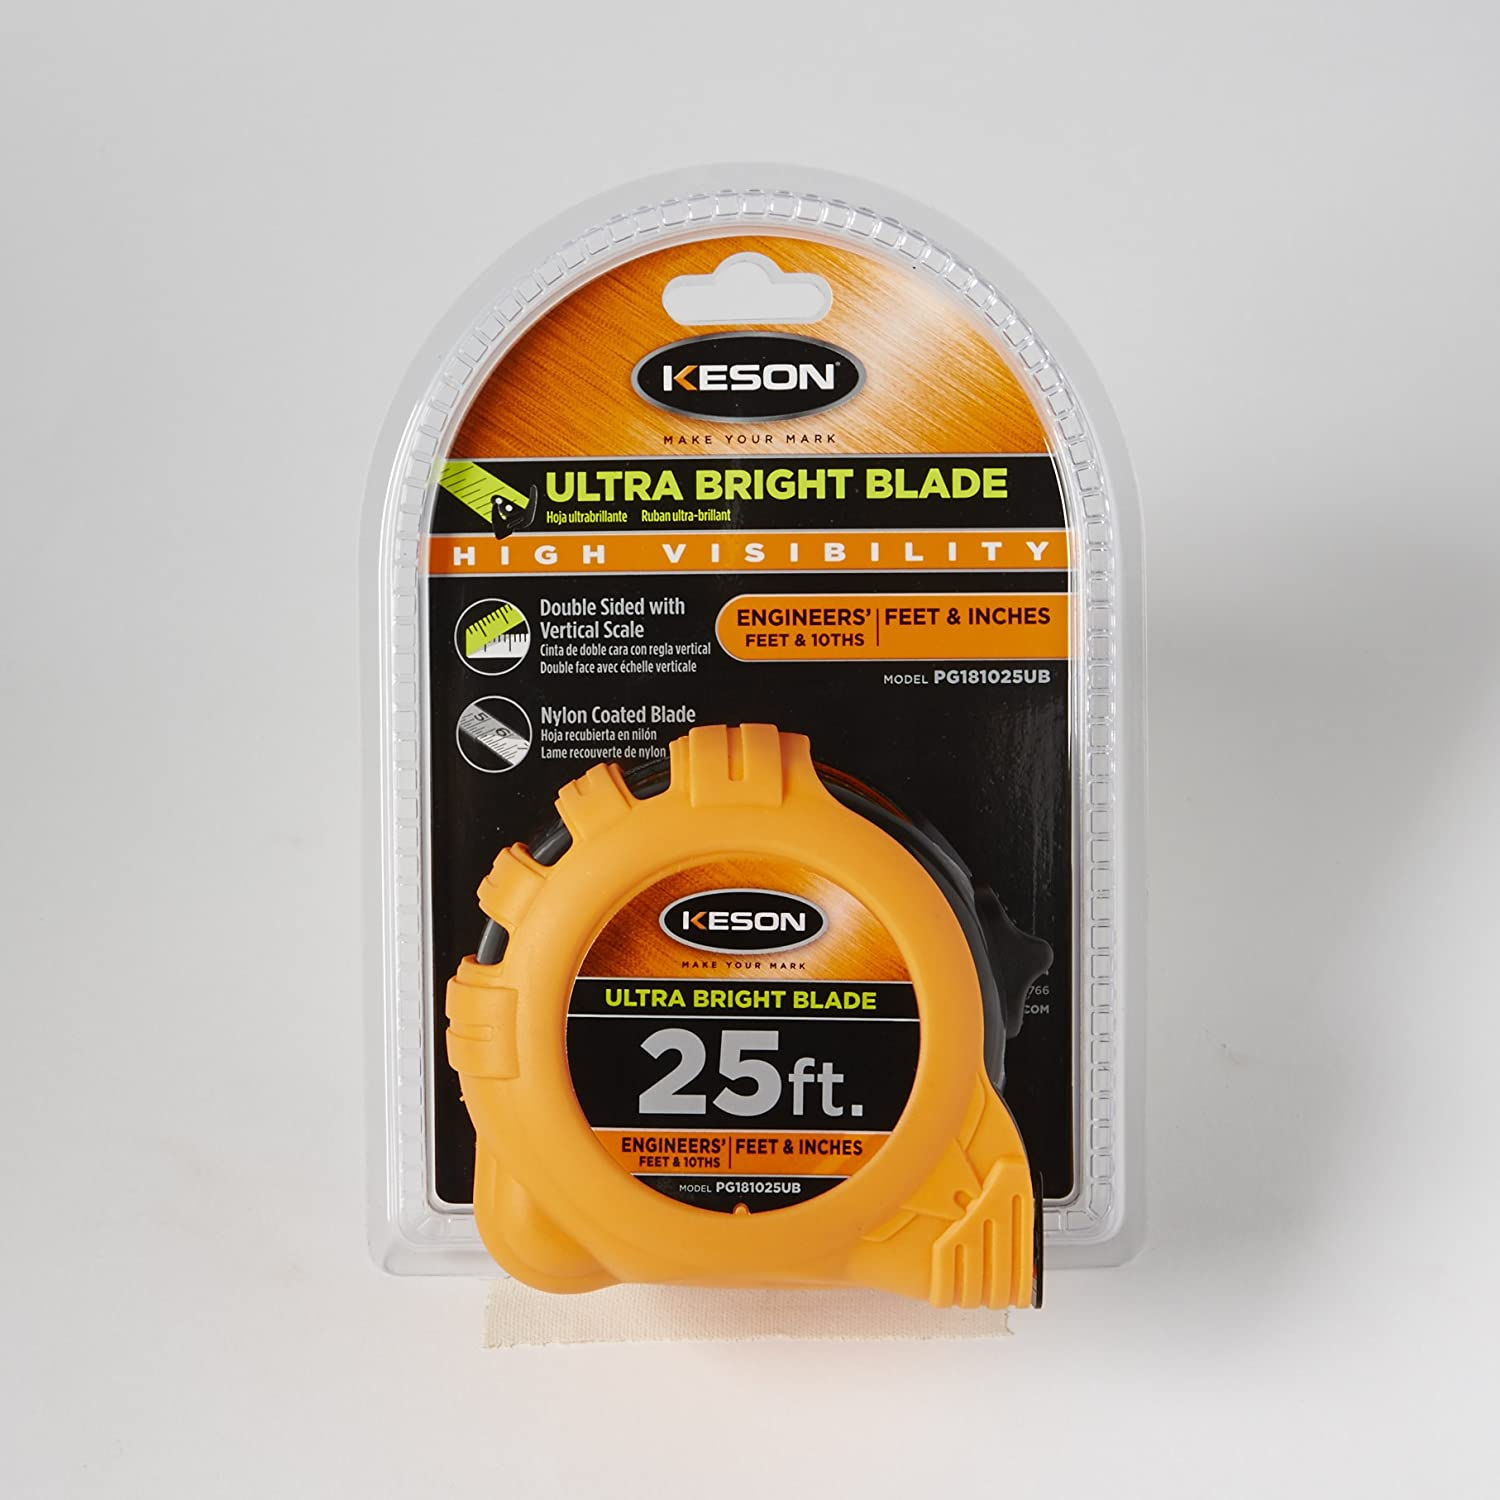 Graduations: 1//10, 1//100 /& ft, in, 1//8 1-Inch by 33-Foot Keson PG181033UB Short Tape Measure with Nylon Coated Ultra Bright Steel Blade